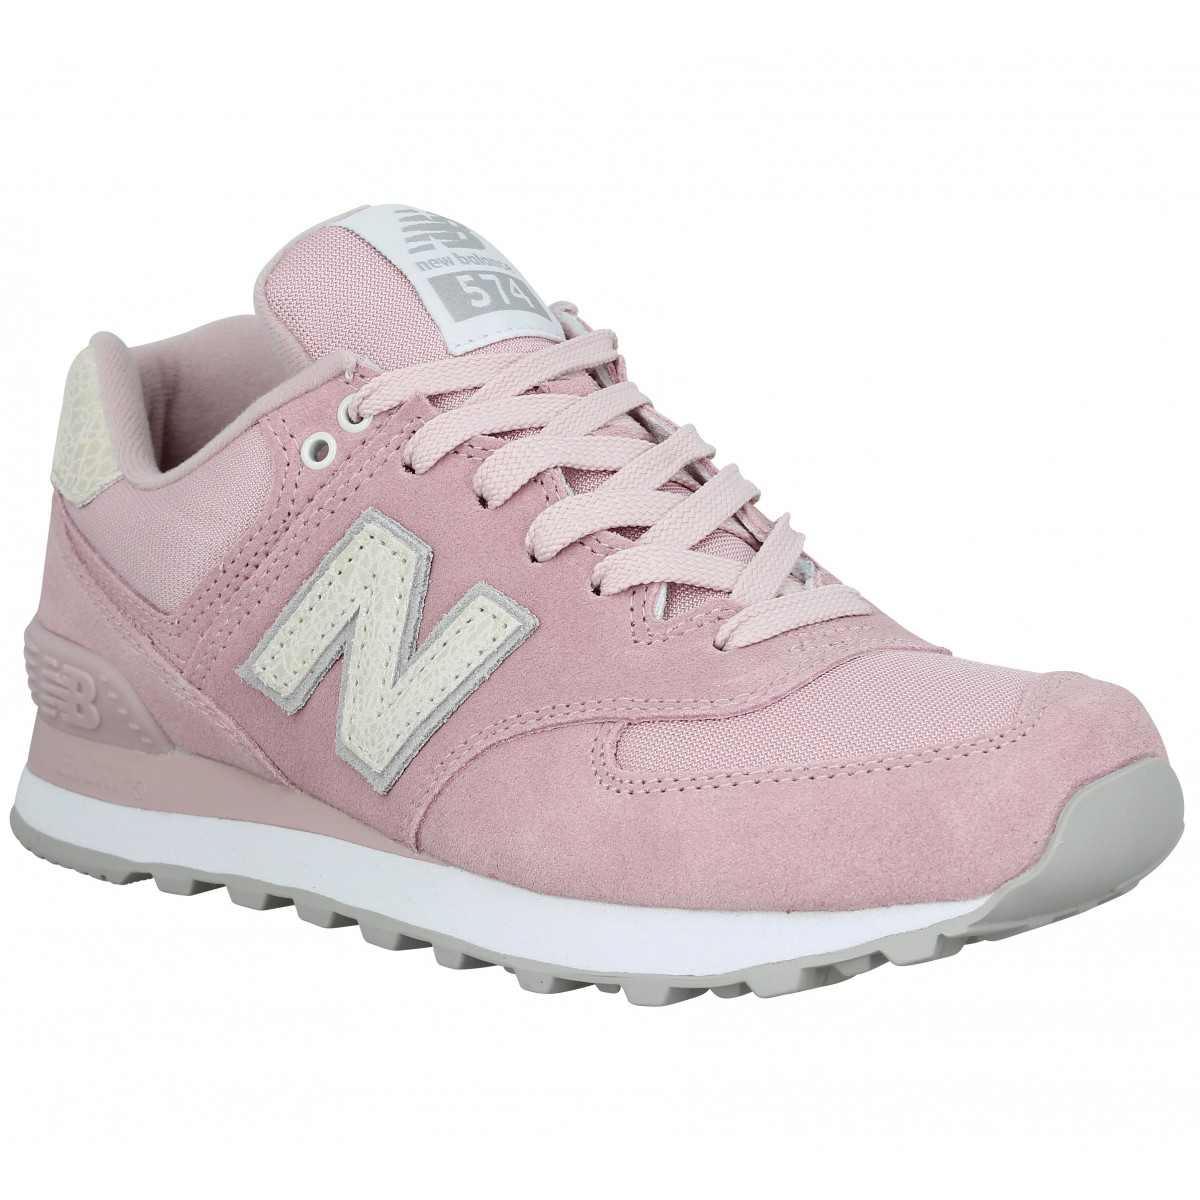 Baskets NEW BALANCE 574 velours toile Femme Pink